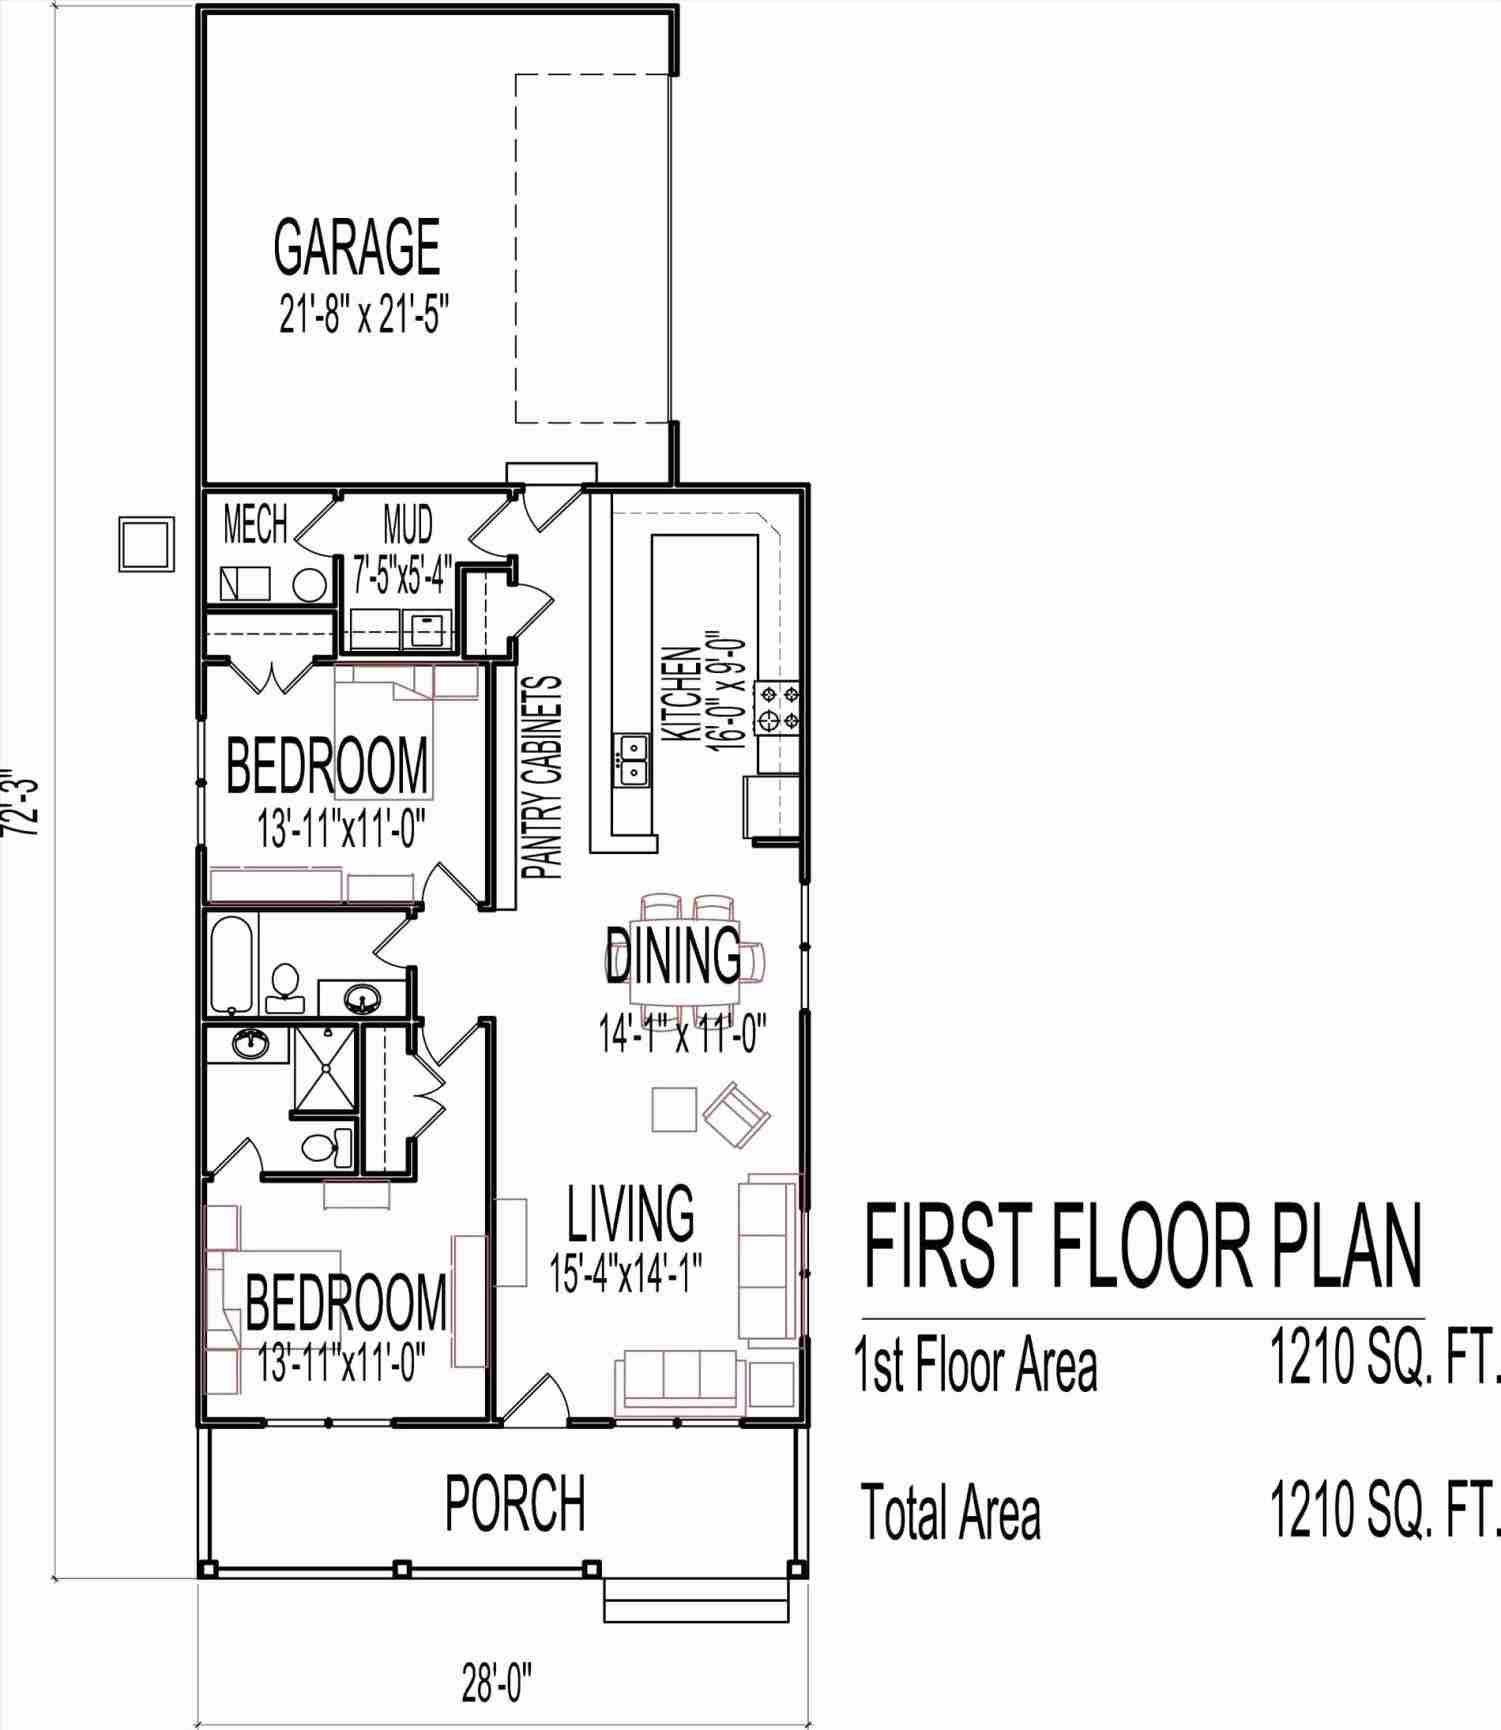 600 sq ft house plans 2 bedroom indian in 2019 | Cheap house ... Narrow House Plans Sf on 4 000 sf house plans, 1400 sf house plans, 1 200 sf home plans, 500 sf house plans, 750 sf house plans, 1200 sf house plans, 2800 sf house plans, 1800 sf house plans, 2500 sf house plans, 1300 sf house plans, 4500 sf house plans, 4000 sf house plans, 600 square foot house plans, 600 ft house plans, 3000 sf house plans, 400 sf house plans, 600 sf bedroom, 2400 sf house plans, 6000 sf house plans, 1 000 sf cottage plans,